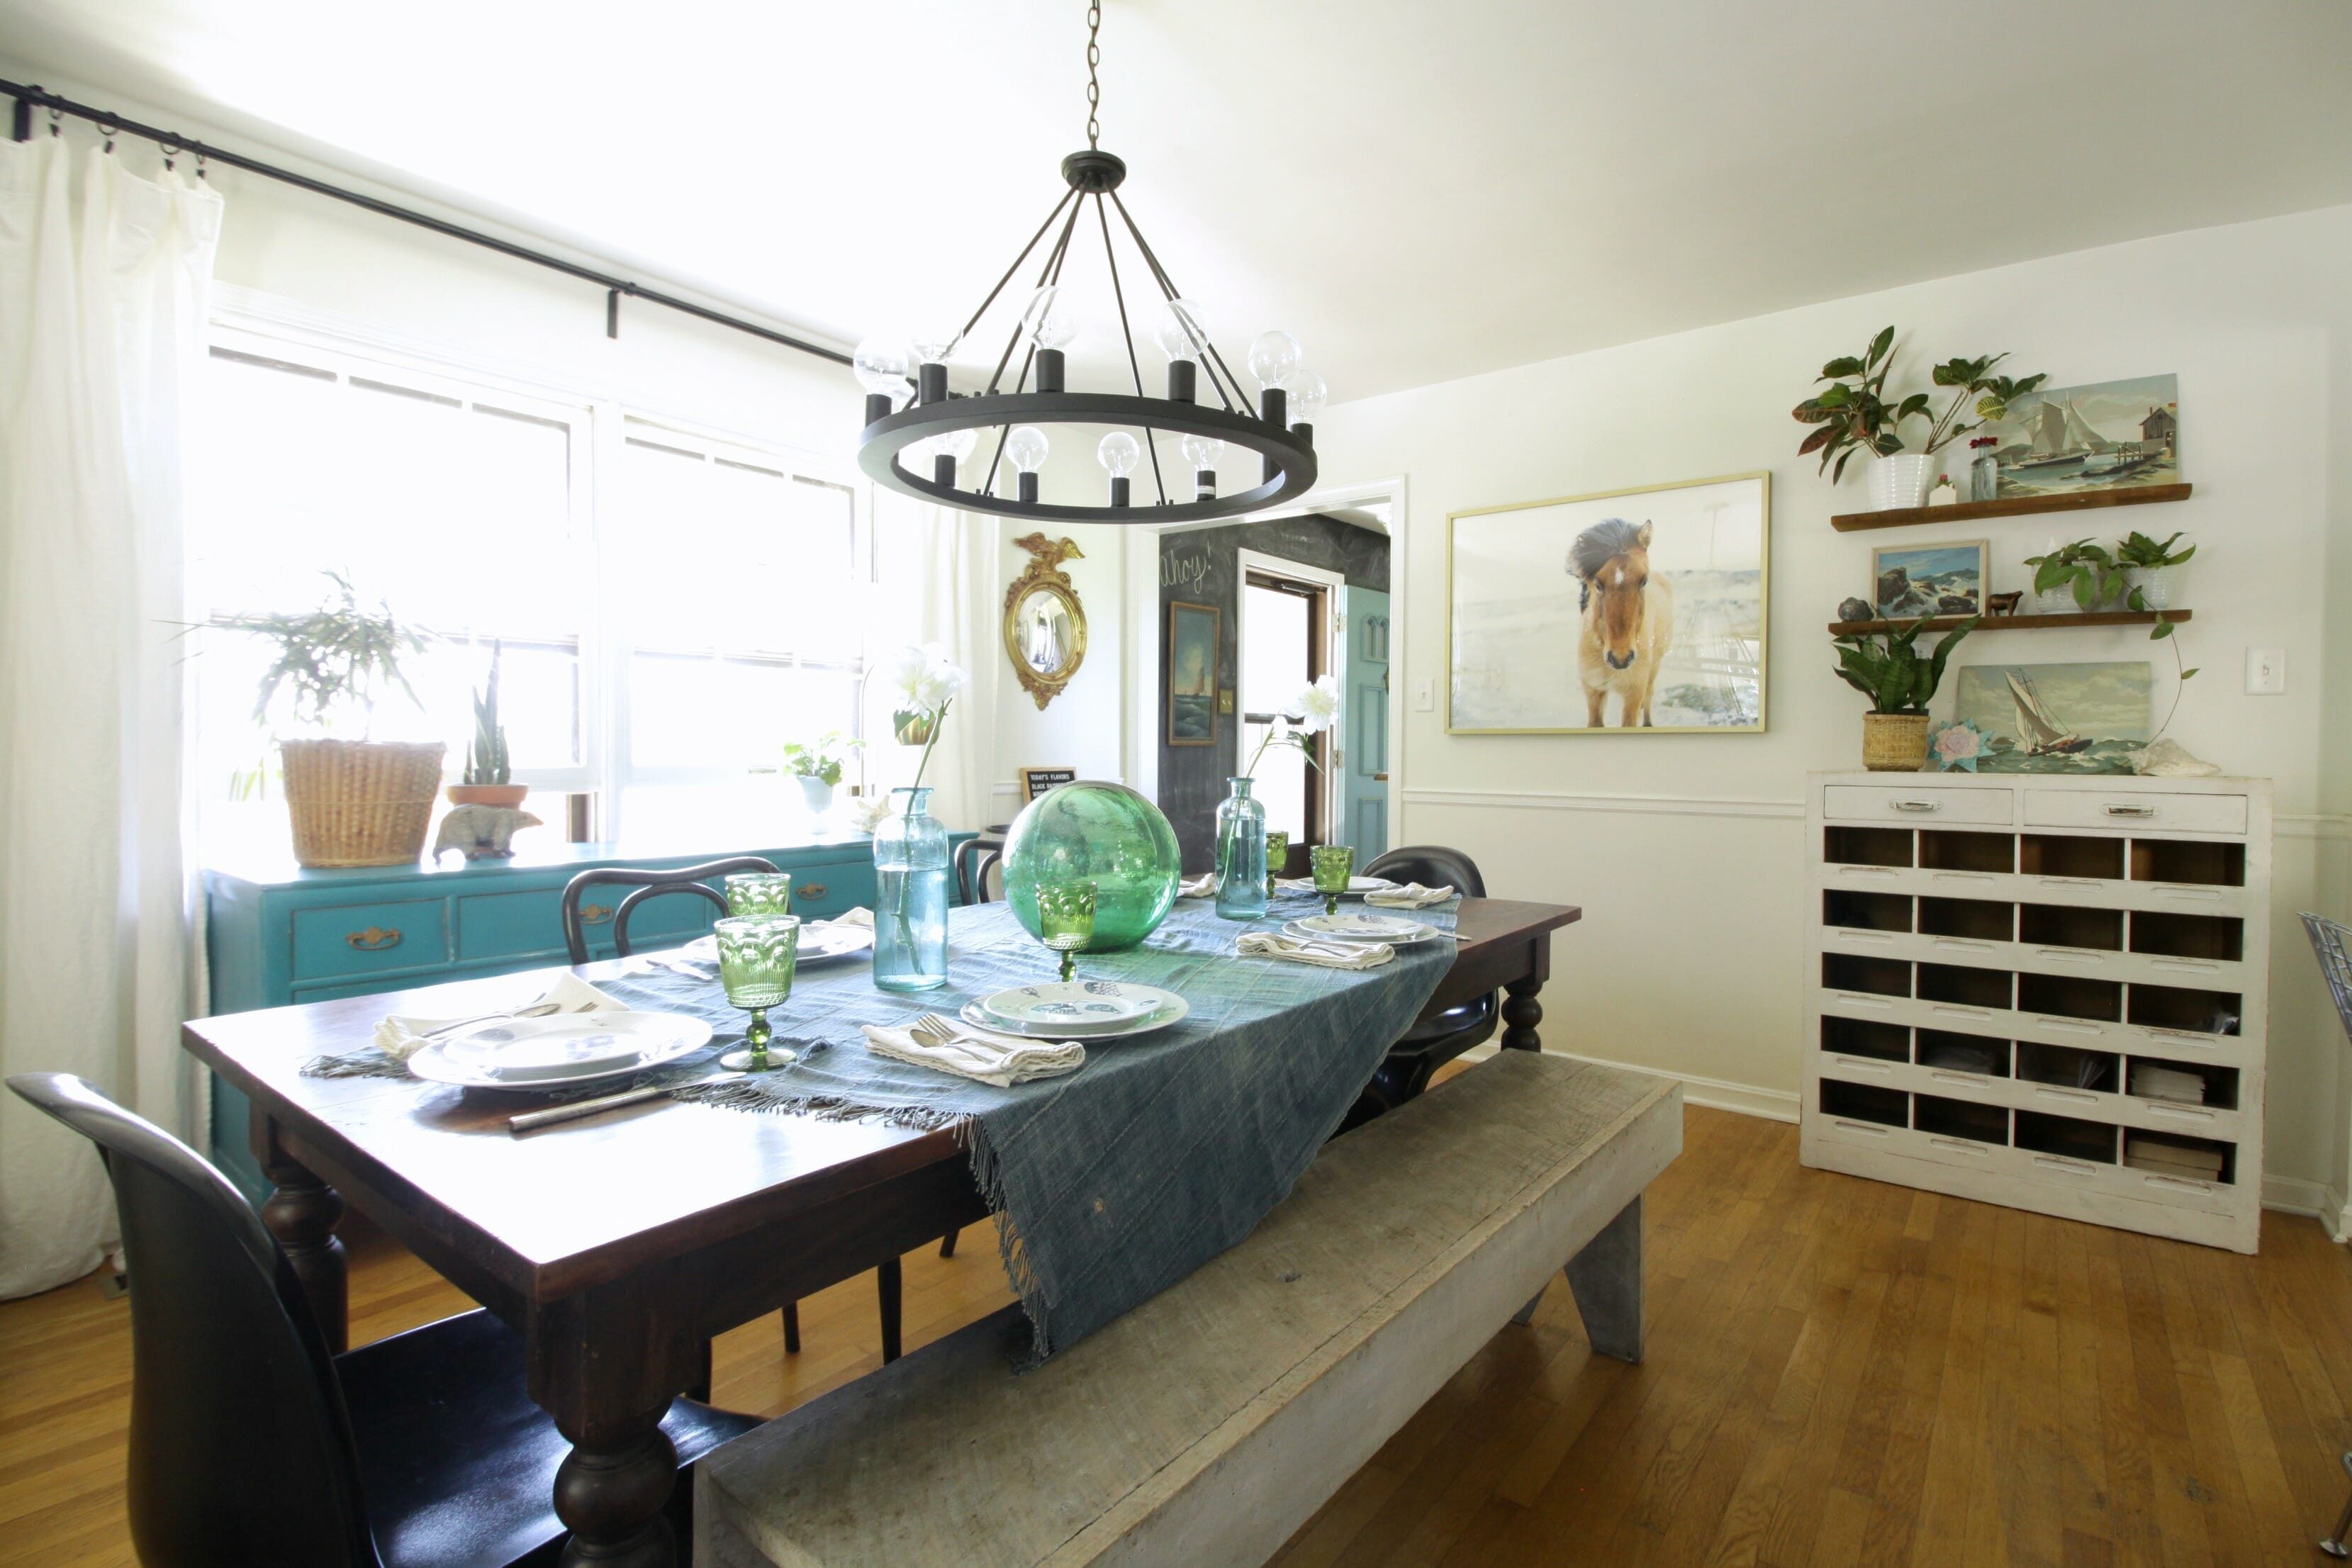 Modern Farmhouse Dining Room: Eclectic Summer Kitchen And Dining Room Tour